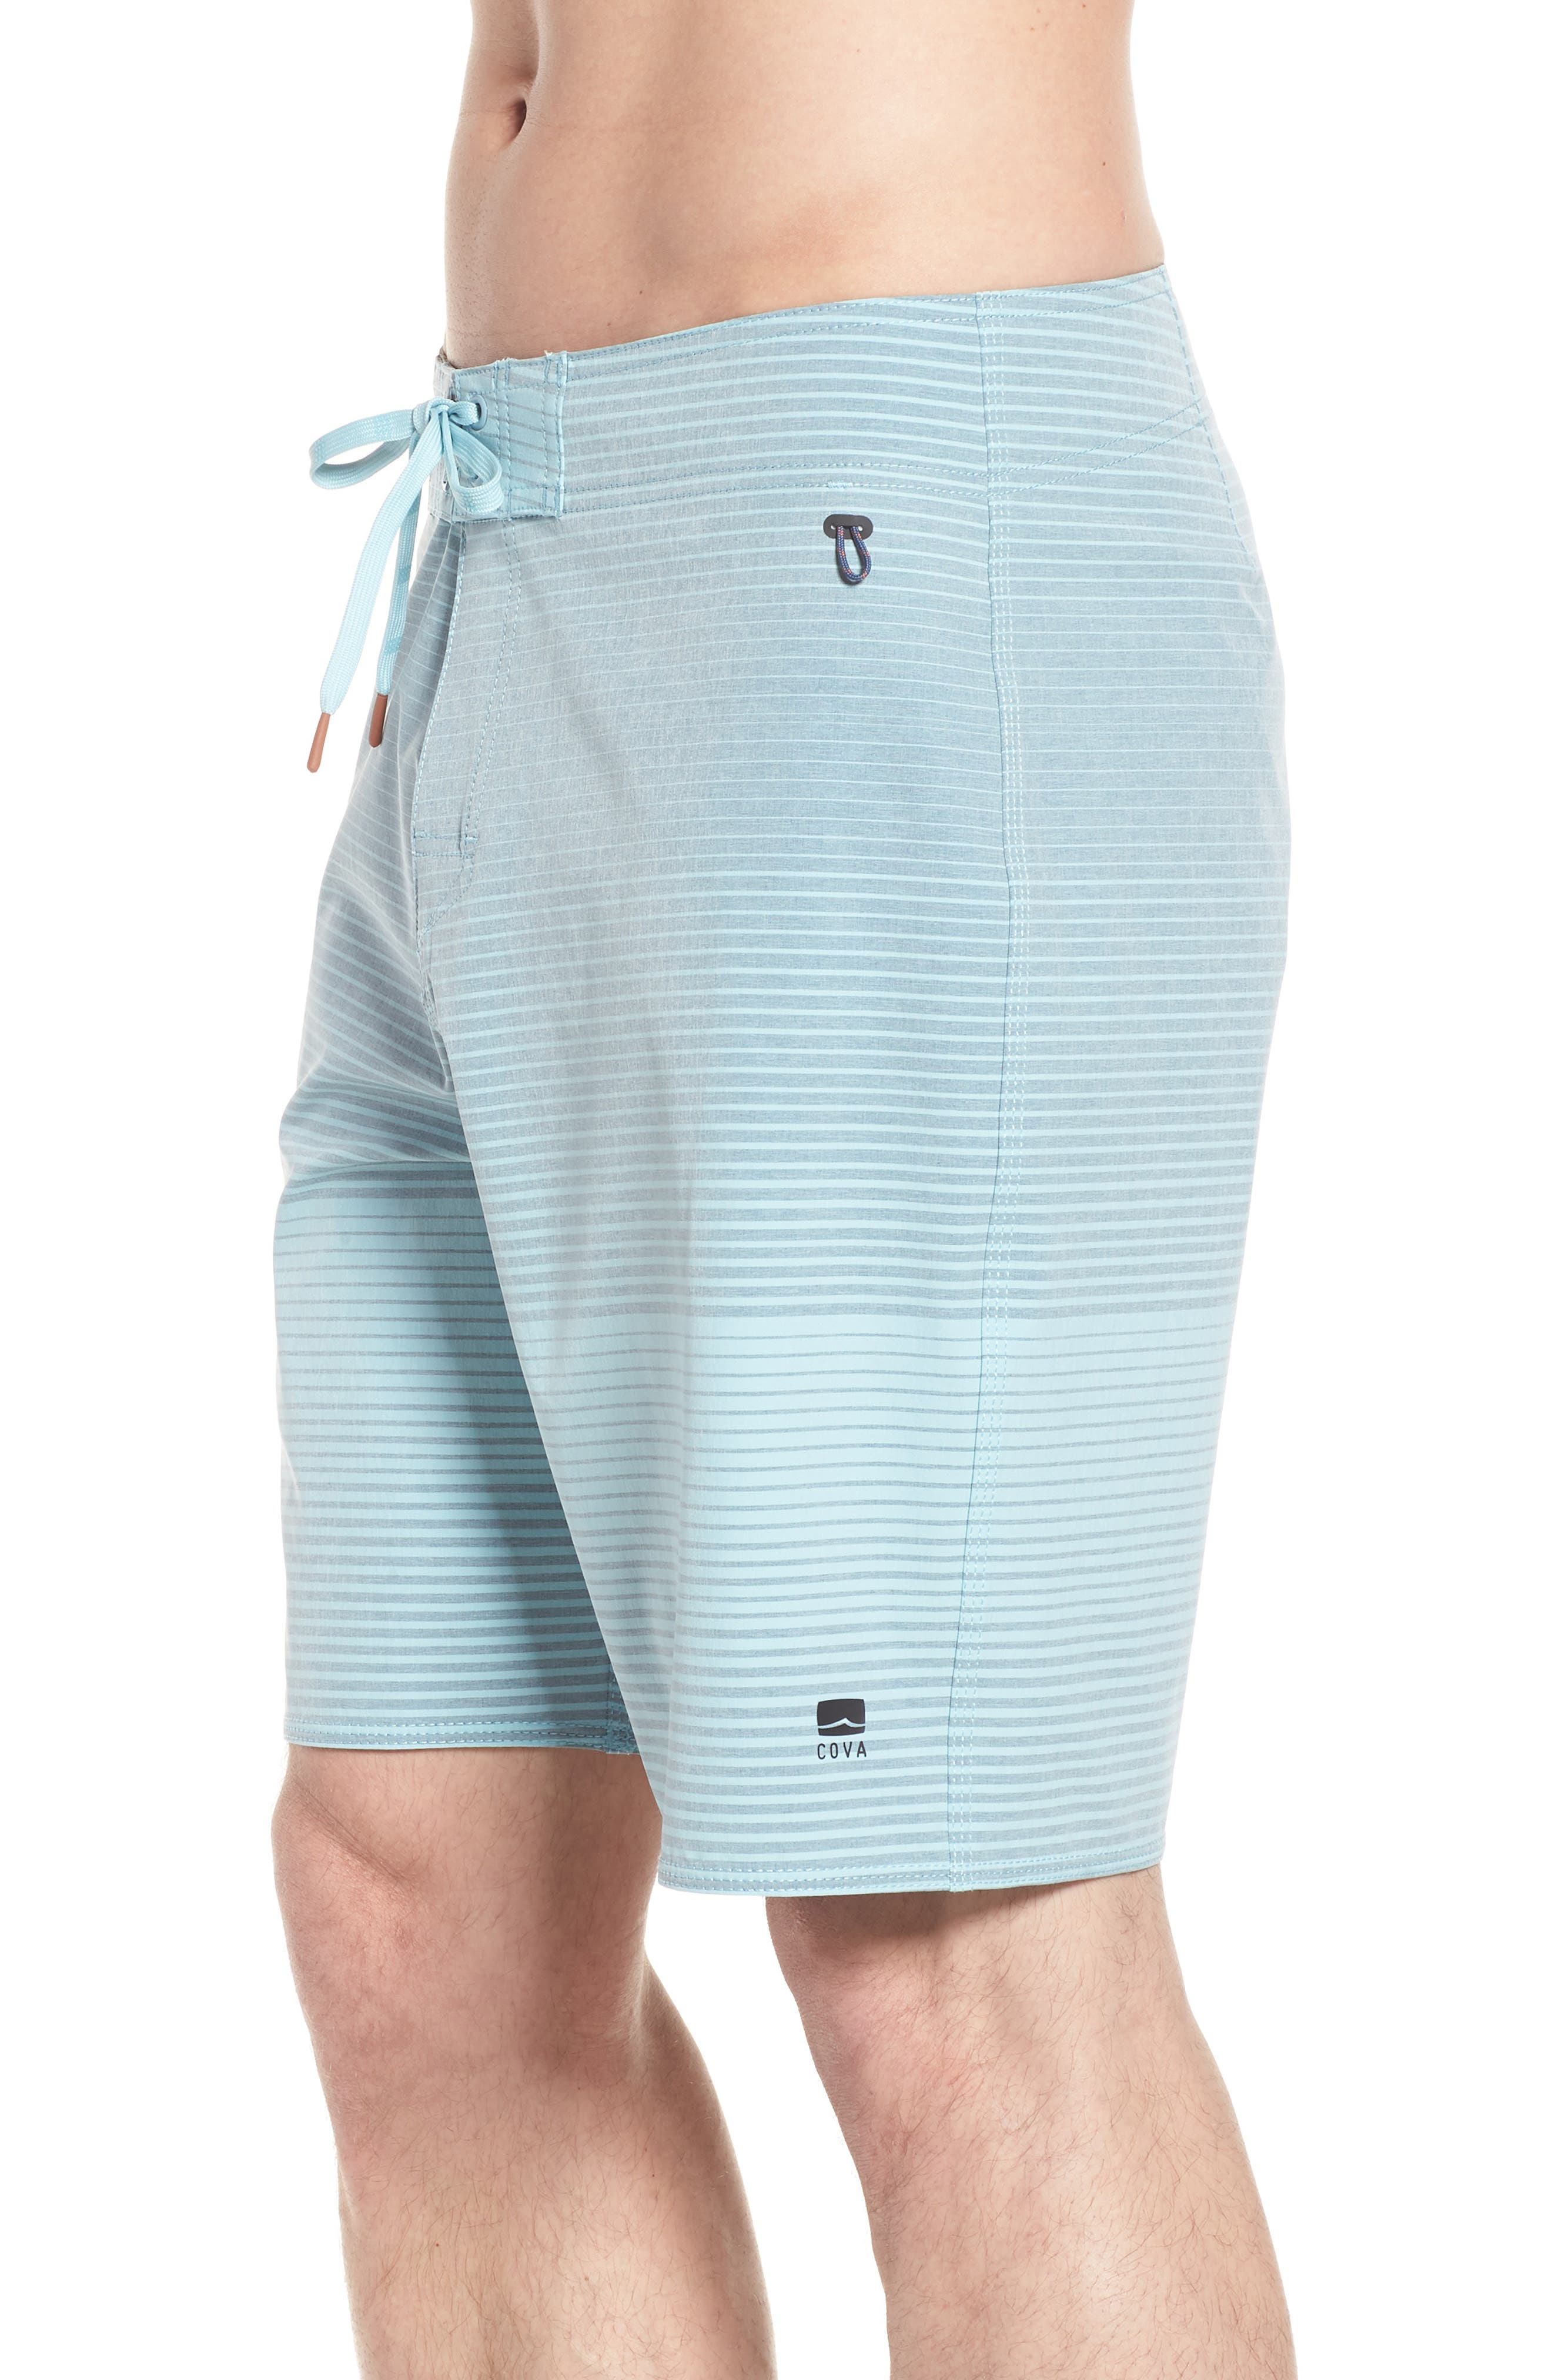 Water Level Board Shorts,                             Alternate thumbnail 4, color,                             Harbour Blue